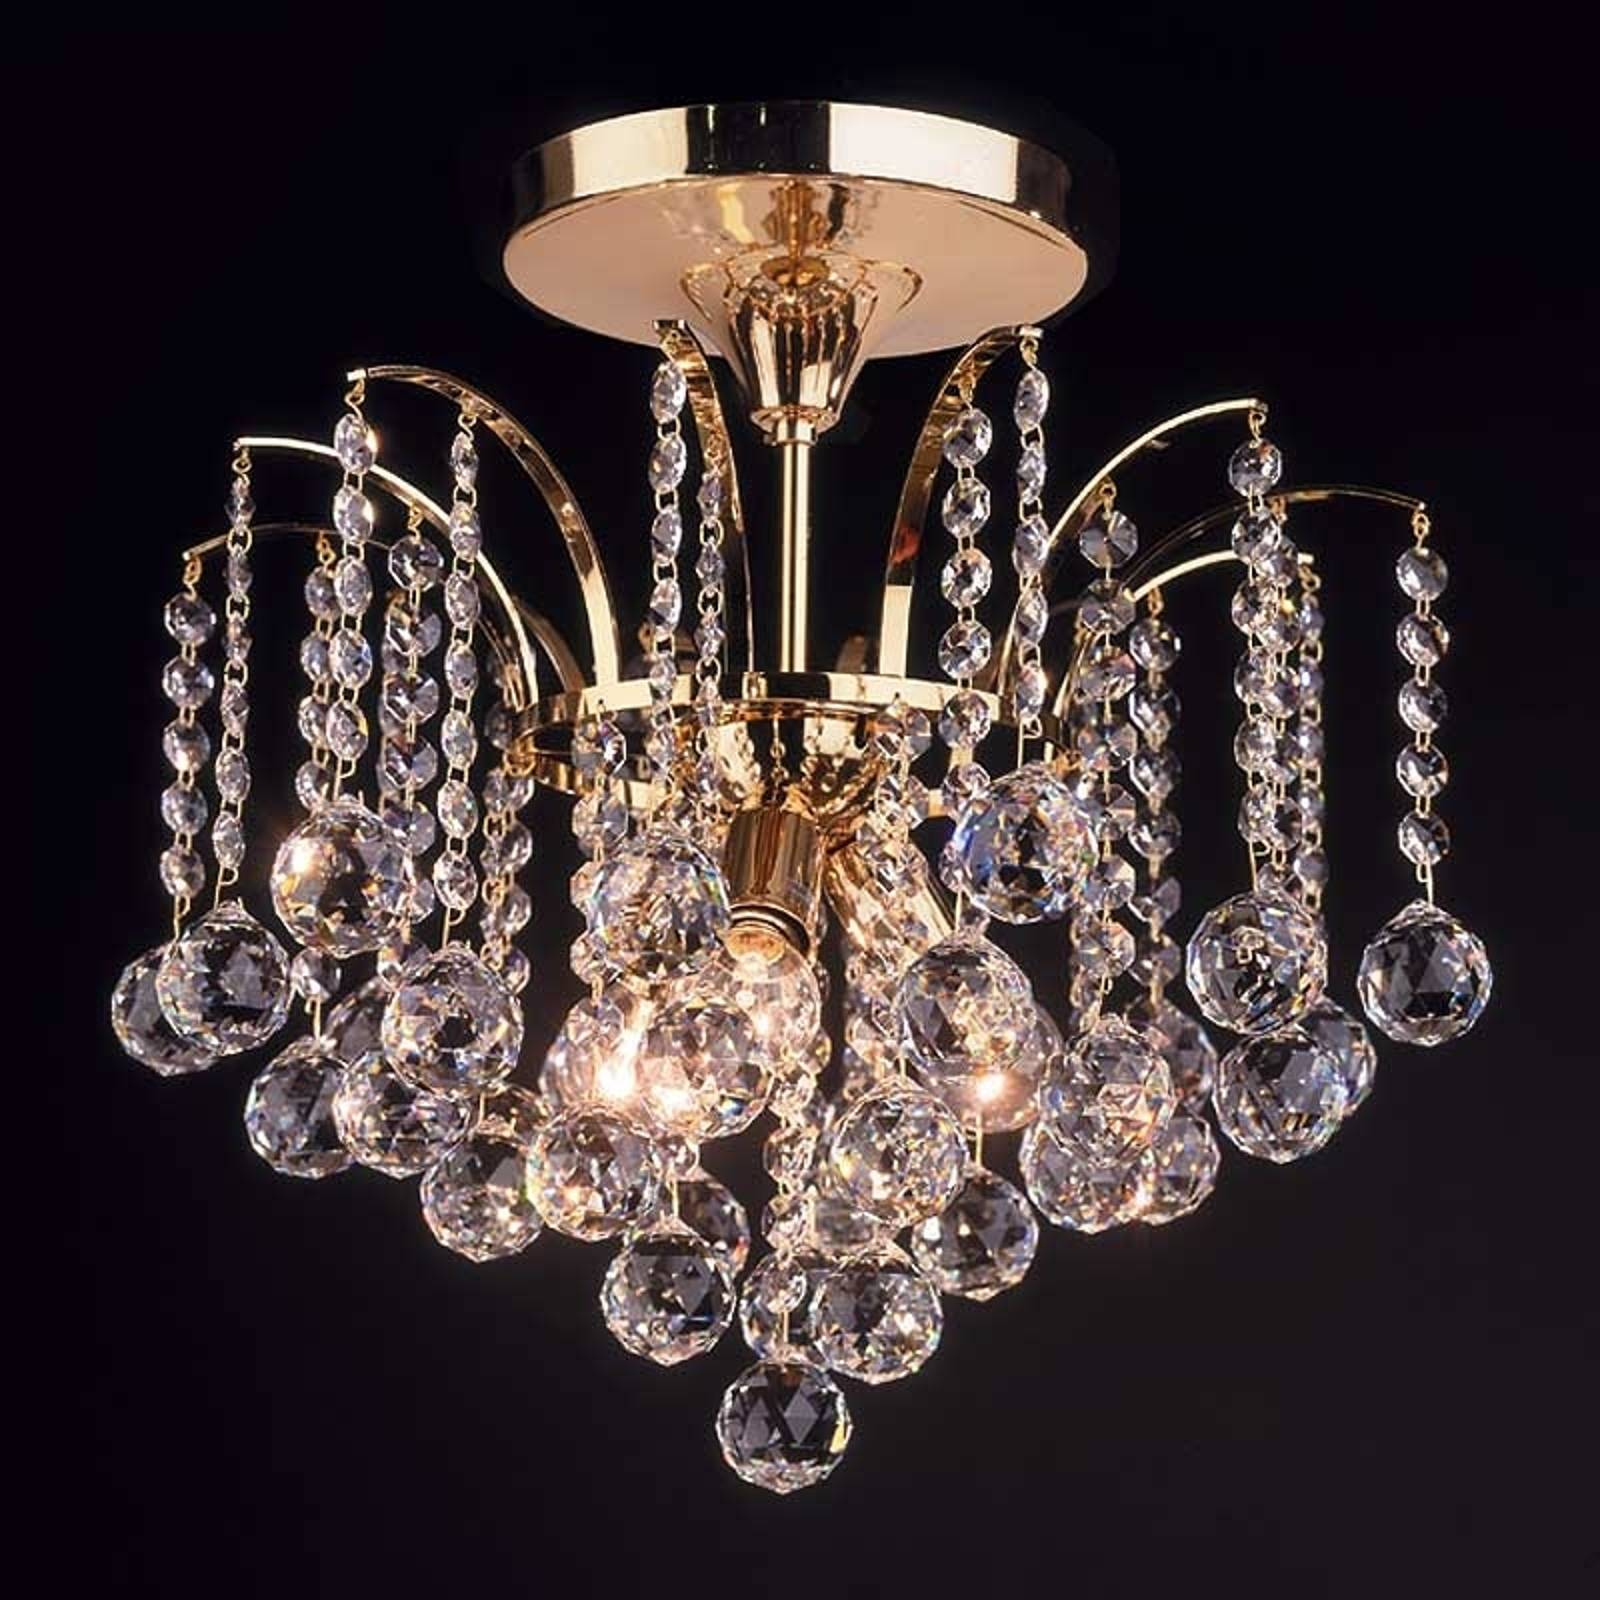 Lennarda ceiling light, crystal / gold 42 cm from Orion